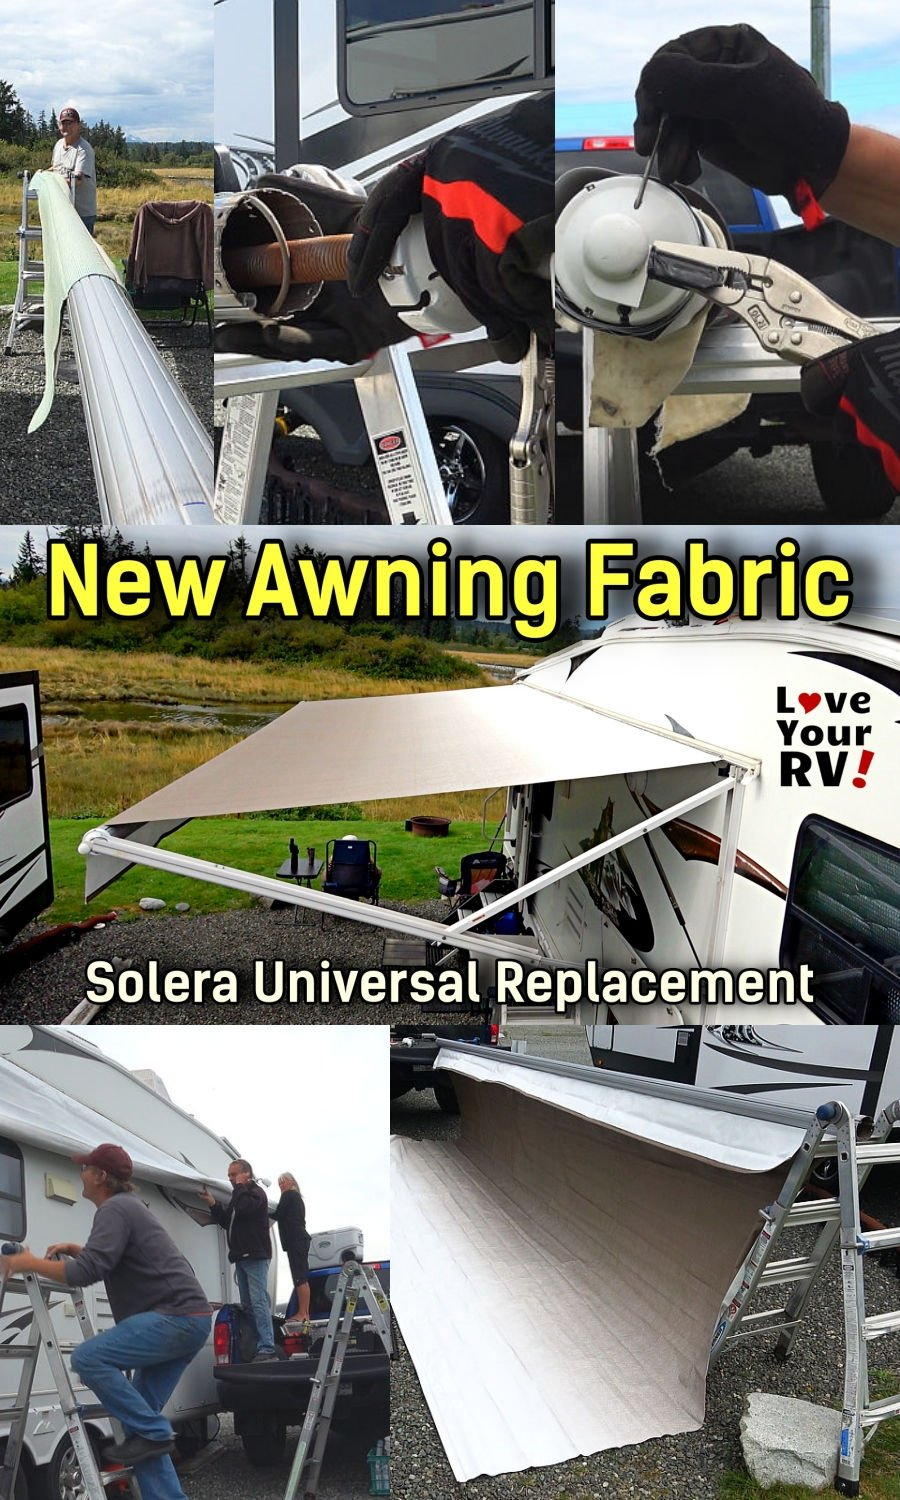 Replacing Worn Out RV Awning Fabric New Solera Universal Replacement Vinyl from Lippert Components